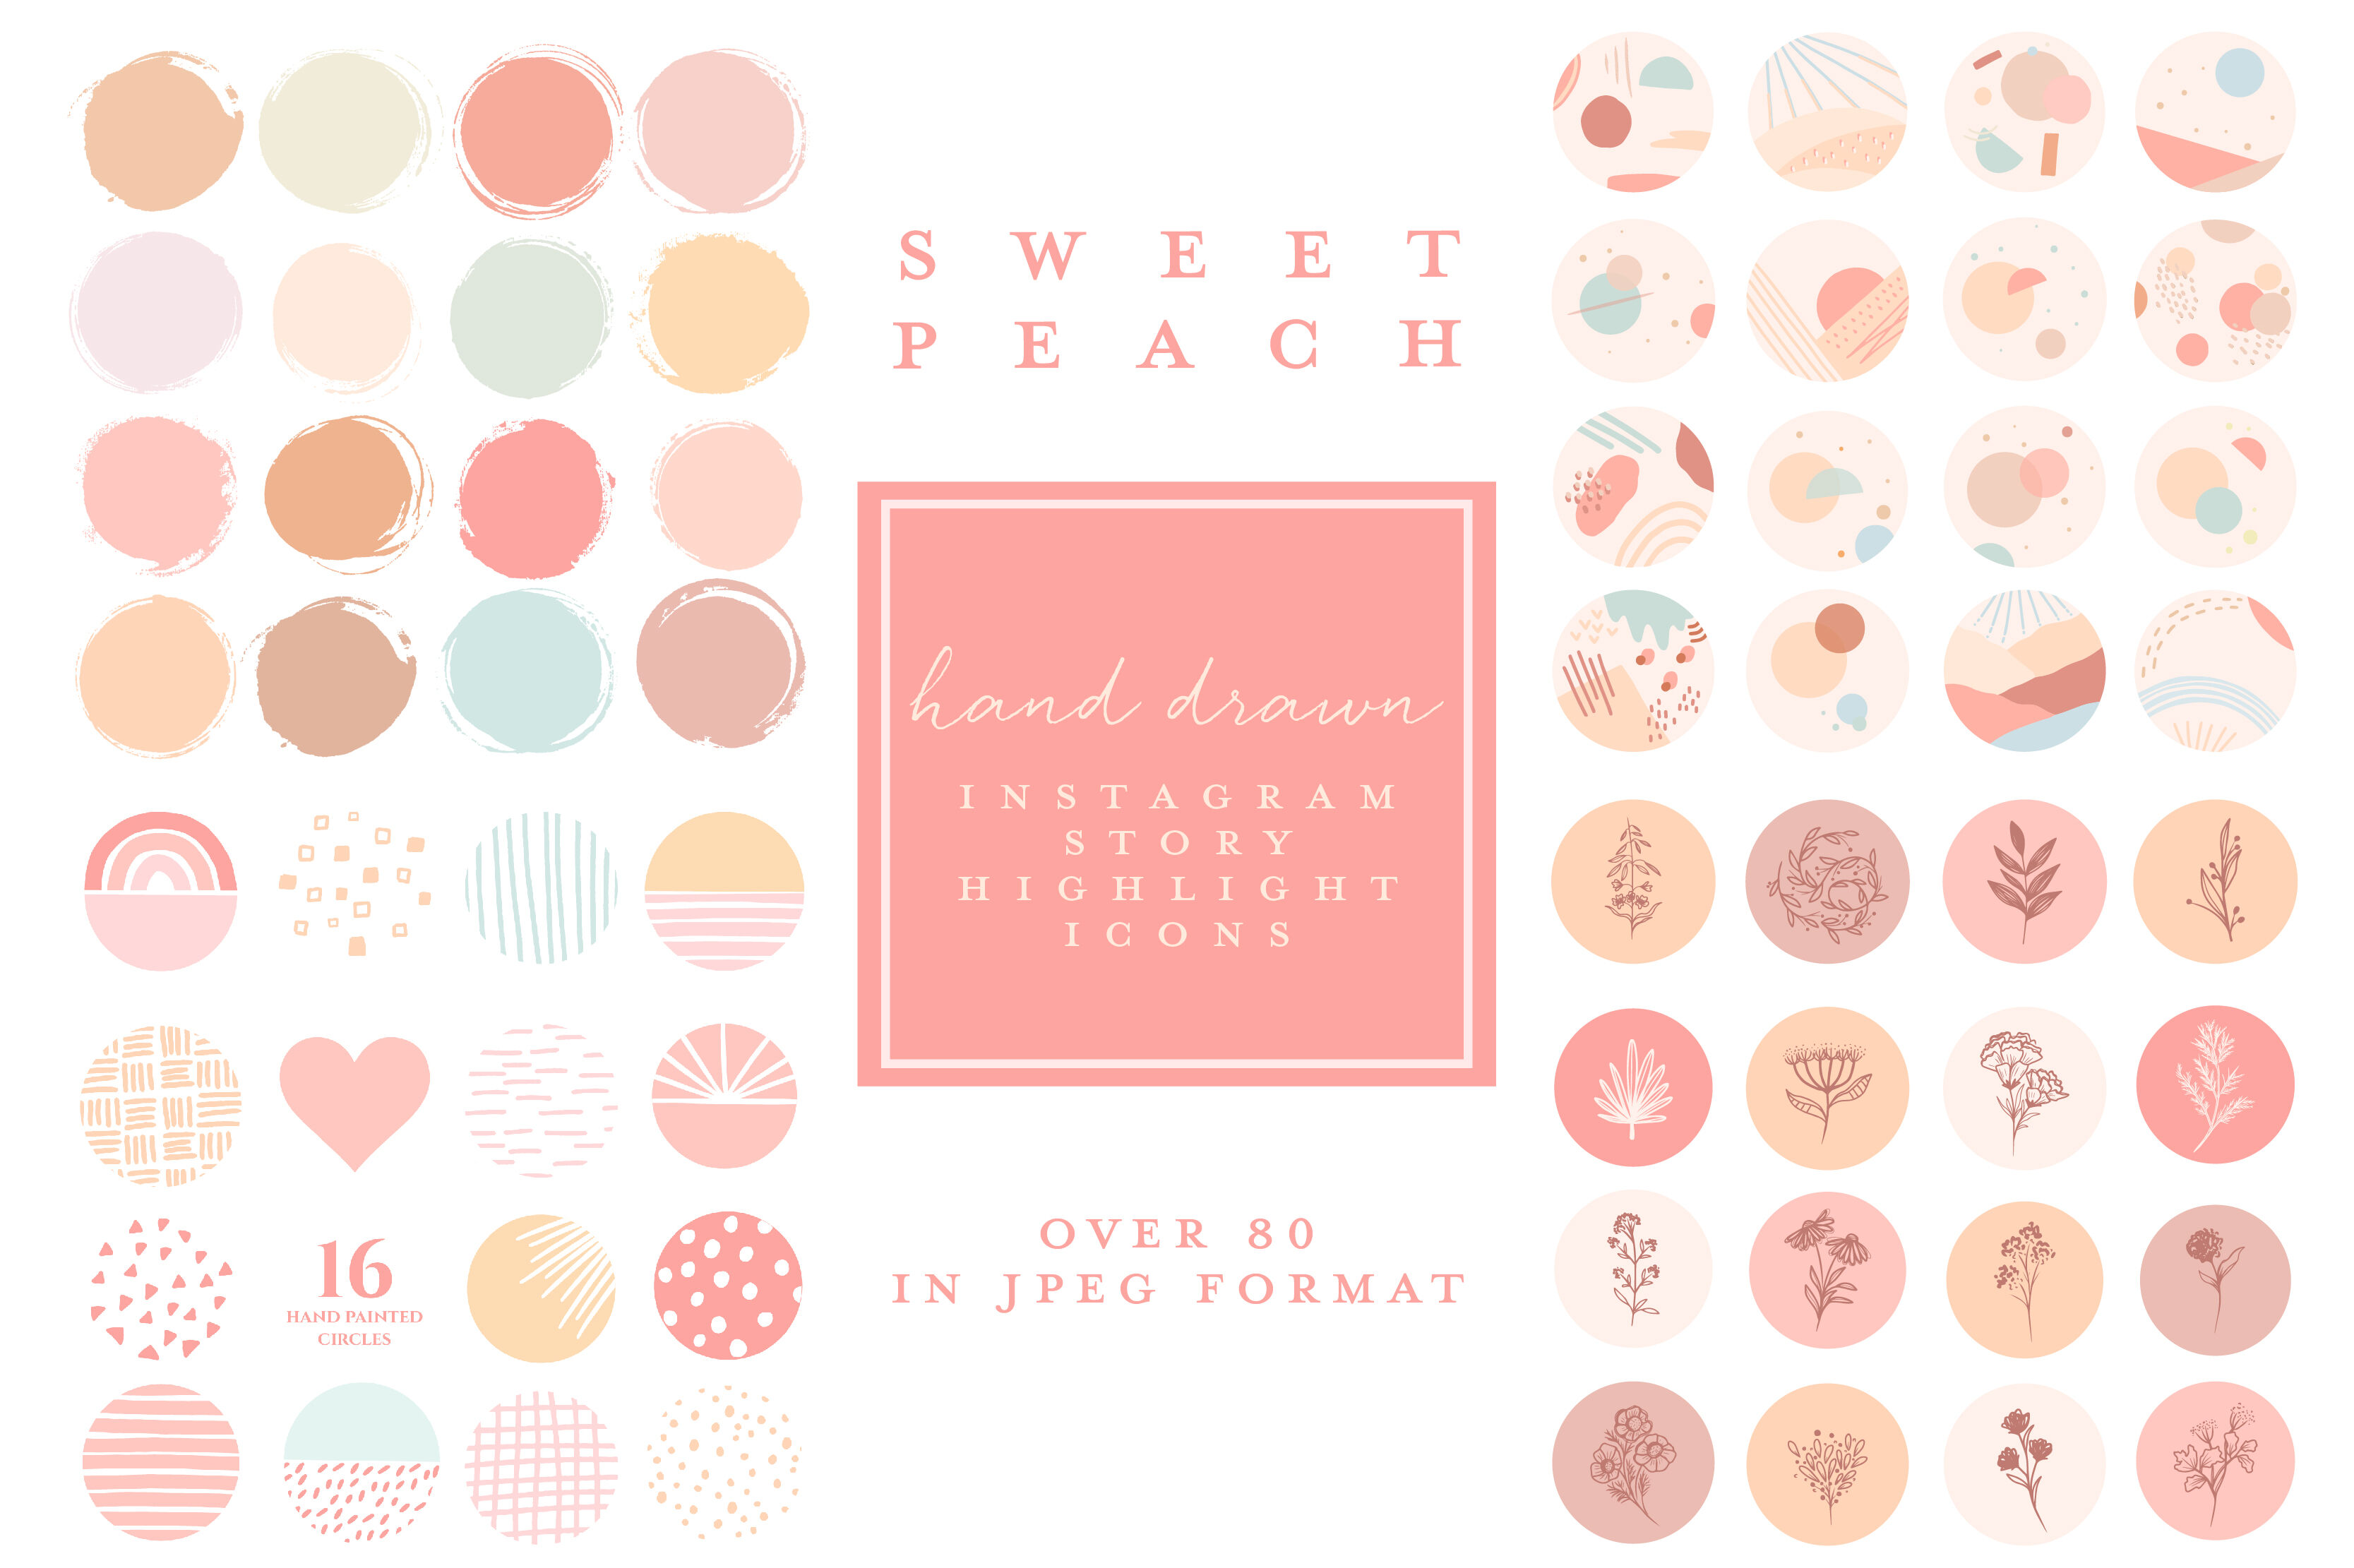 Instagram Highlight Covers Hand Drawn Feminine Peach By Beatrice